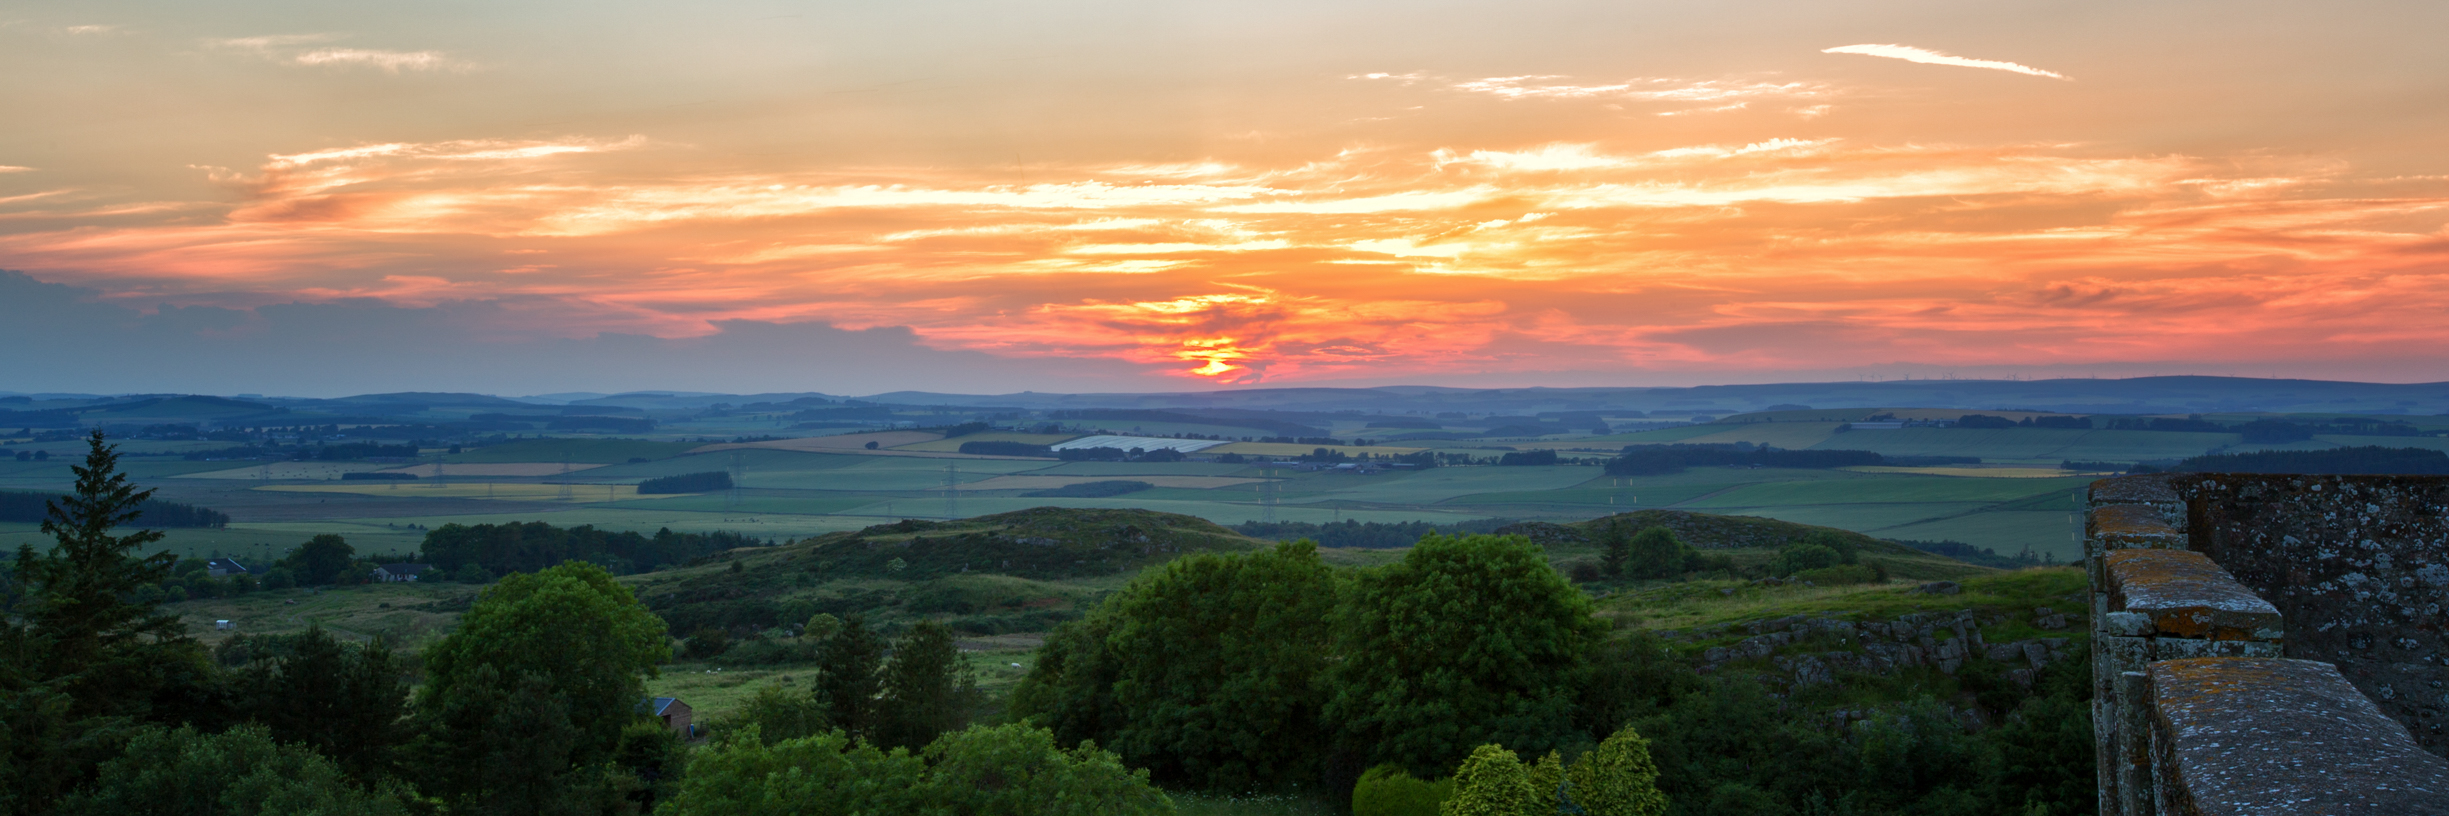 Sunset from Castle Walls